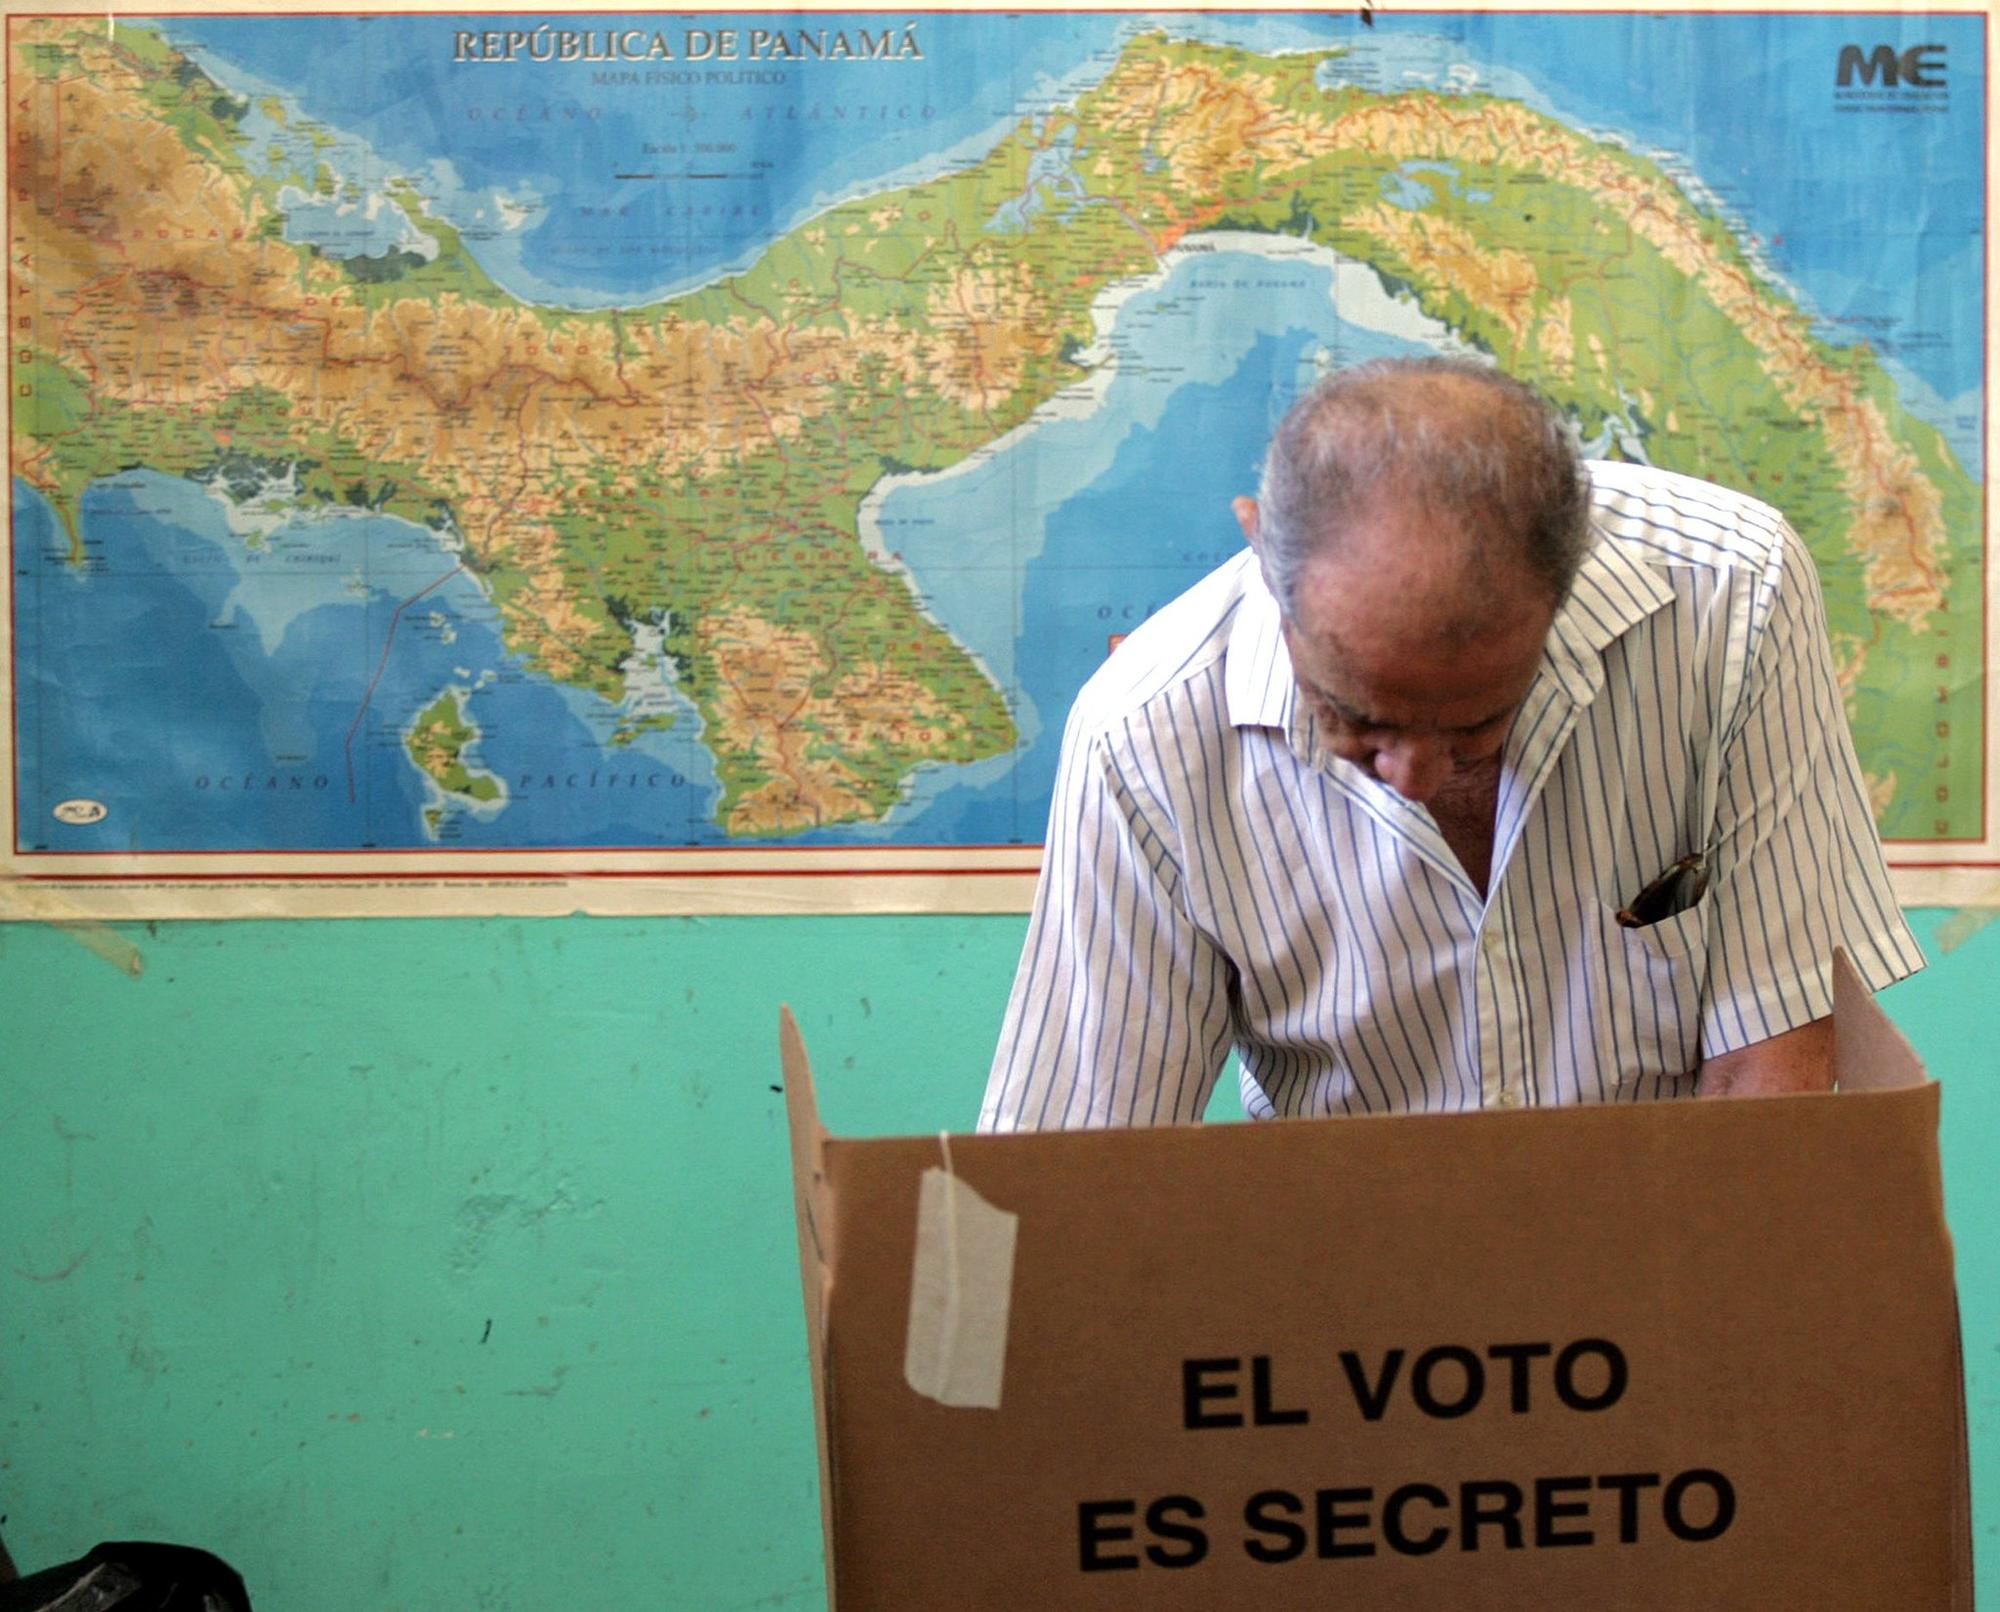 A Panamanian citizen casts his vote during the referendum for the widening of the Panama Canal on October 22, 2006, in Panama City.